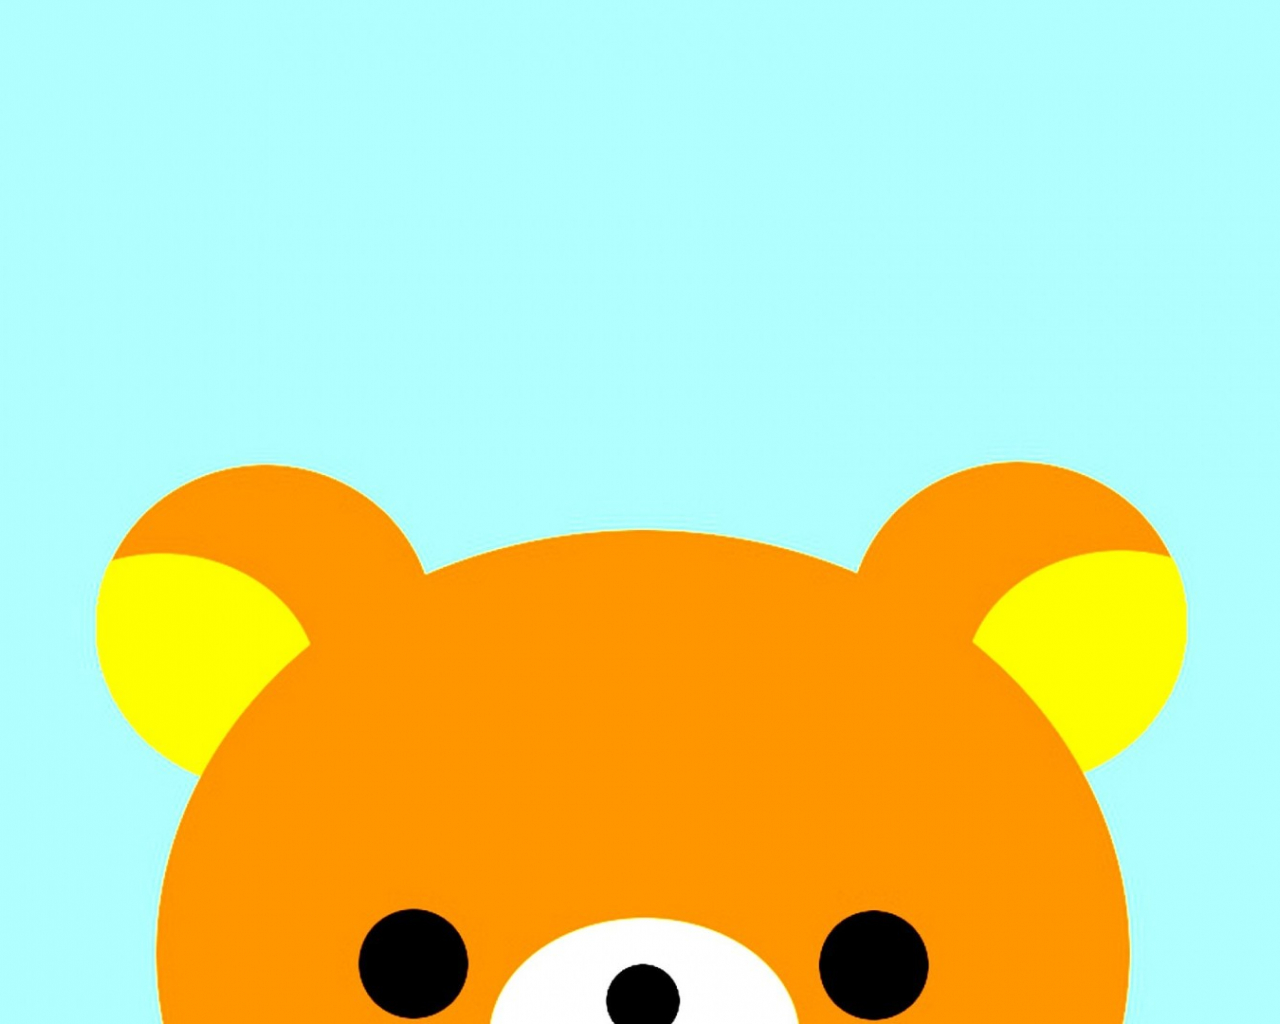 Free Download Rilakkuma Face Wallpaper For Samsung Galaxy Tab 1920x1080 For Your Desktop Mobile Tablet Explore 47 Cute Tablet Wallpaper Samsung Tablet Wallpaper Free Tablet Wallpaper